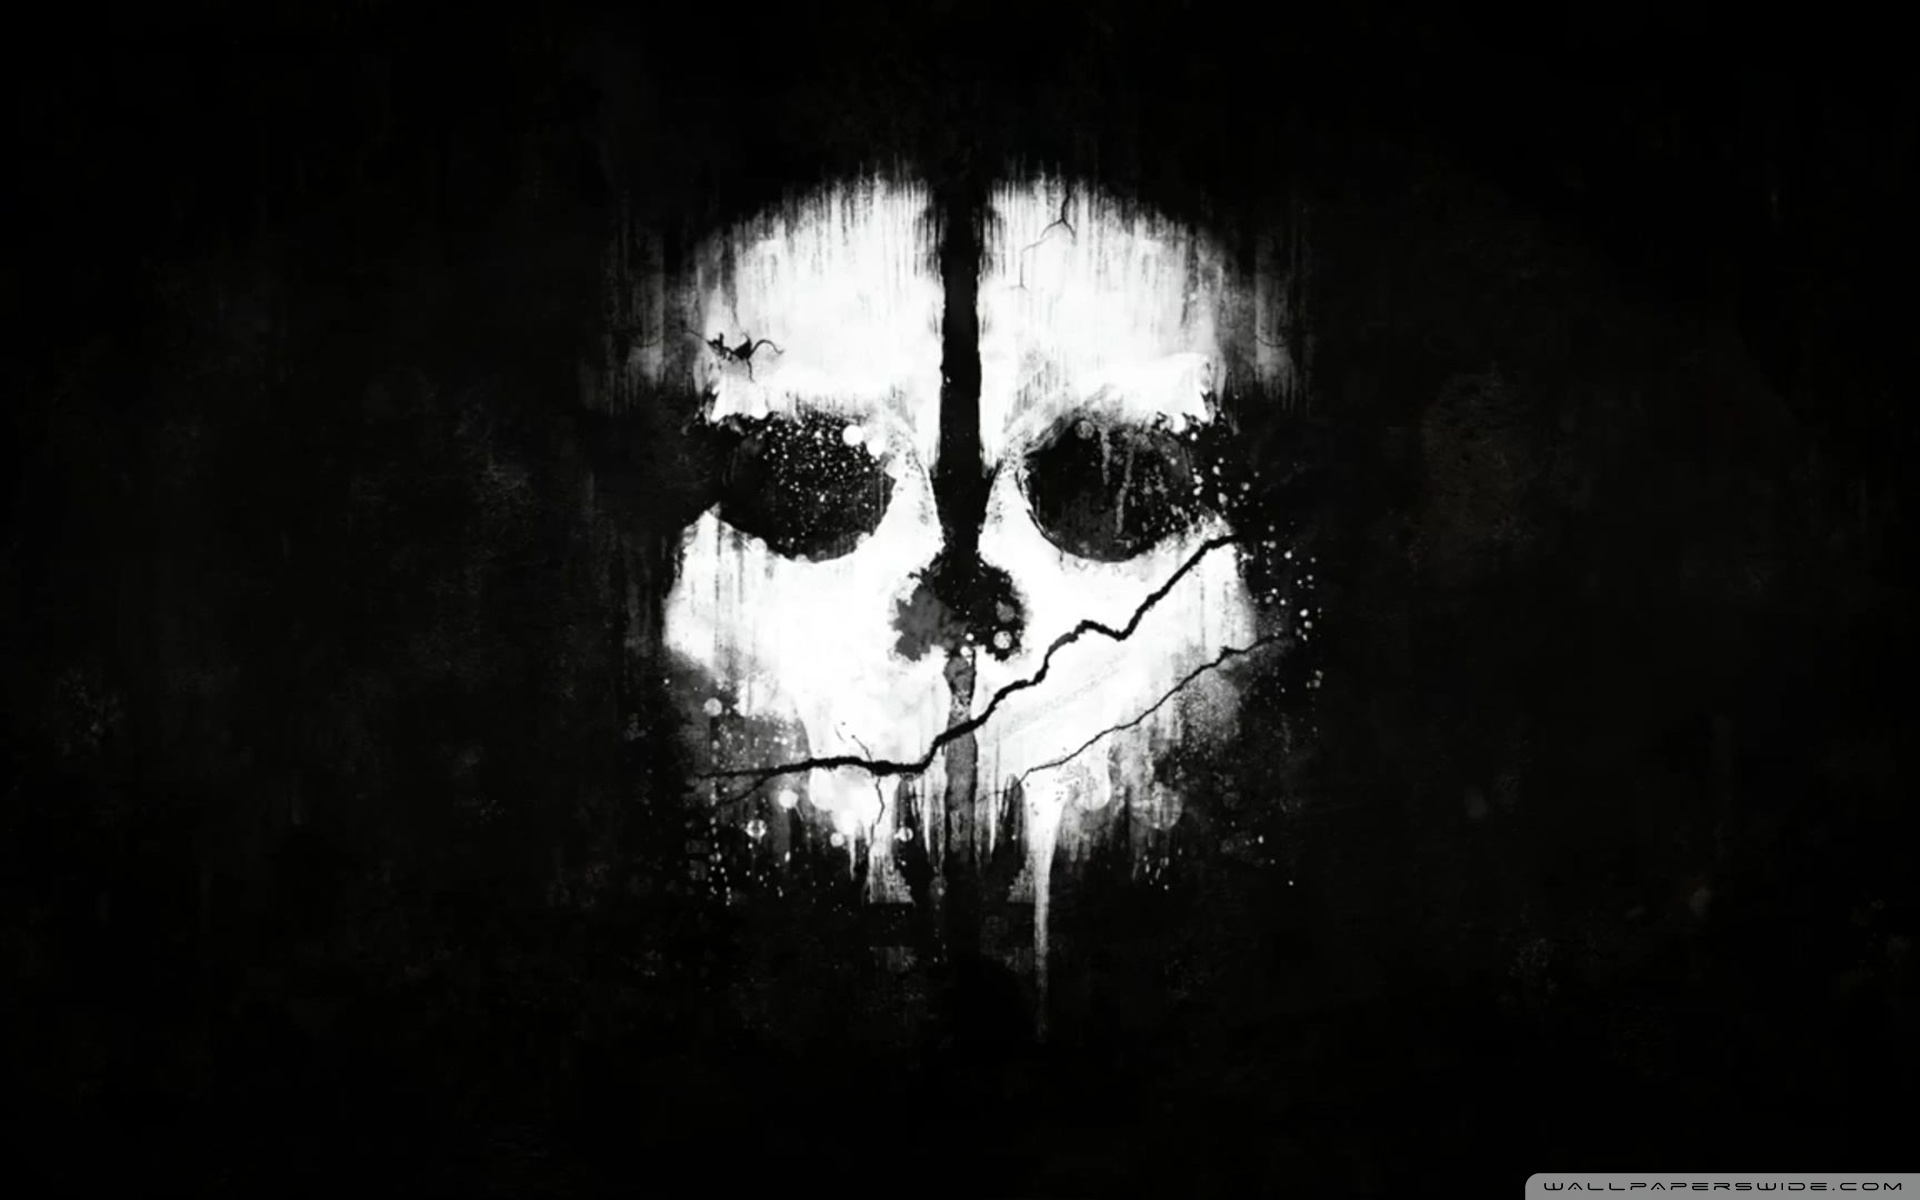 WallpapersWide com | Call Of Duty HD Desktop Wallpapers for